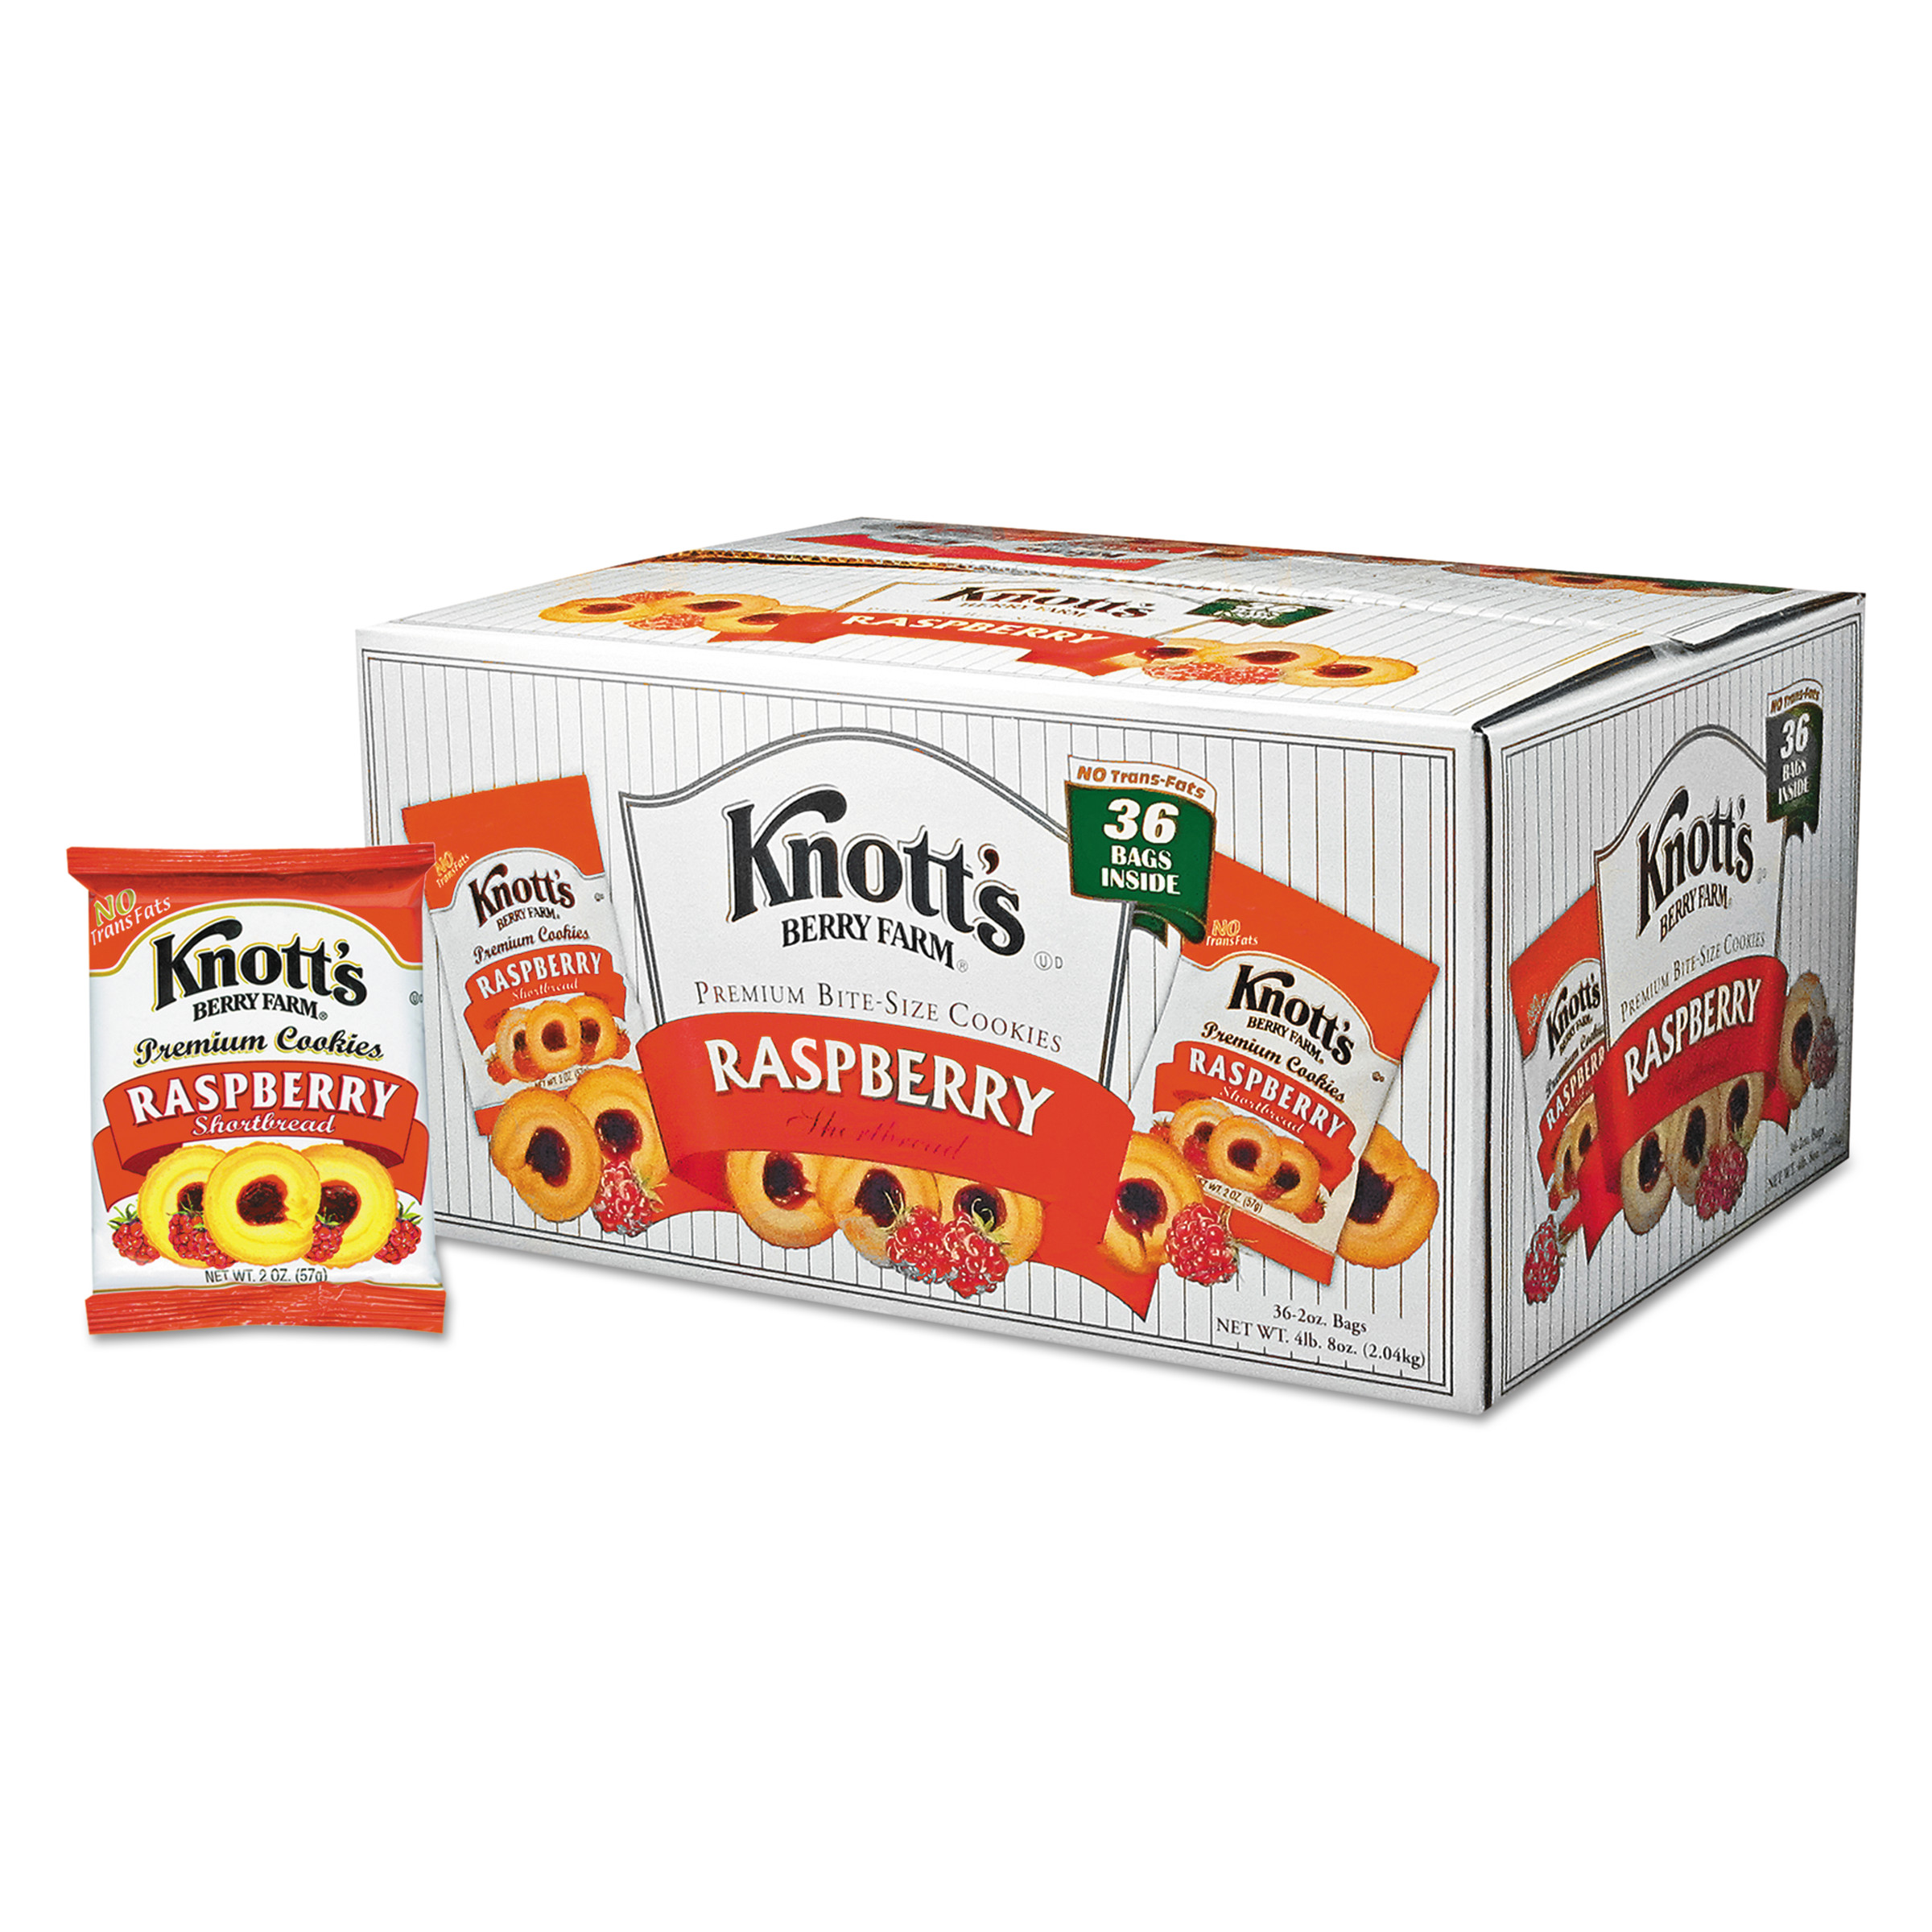 Knott's Berry Farm Raspberry Shortbread Cookies, 2 oz. 36 count by BISCOMERICA CORP.